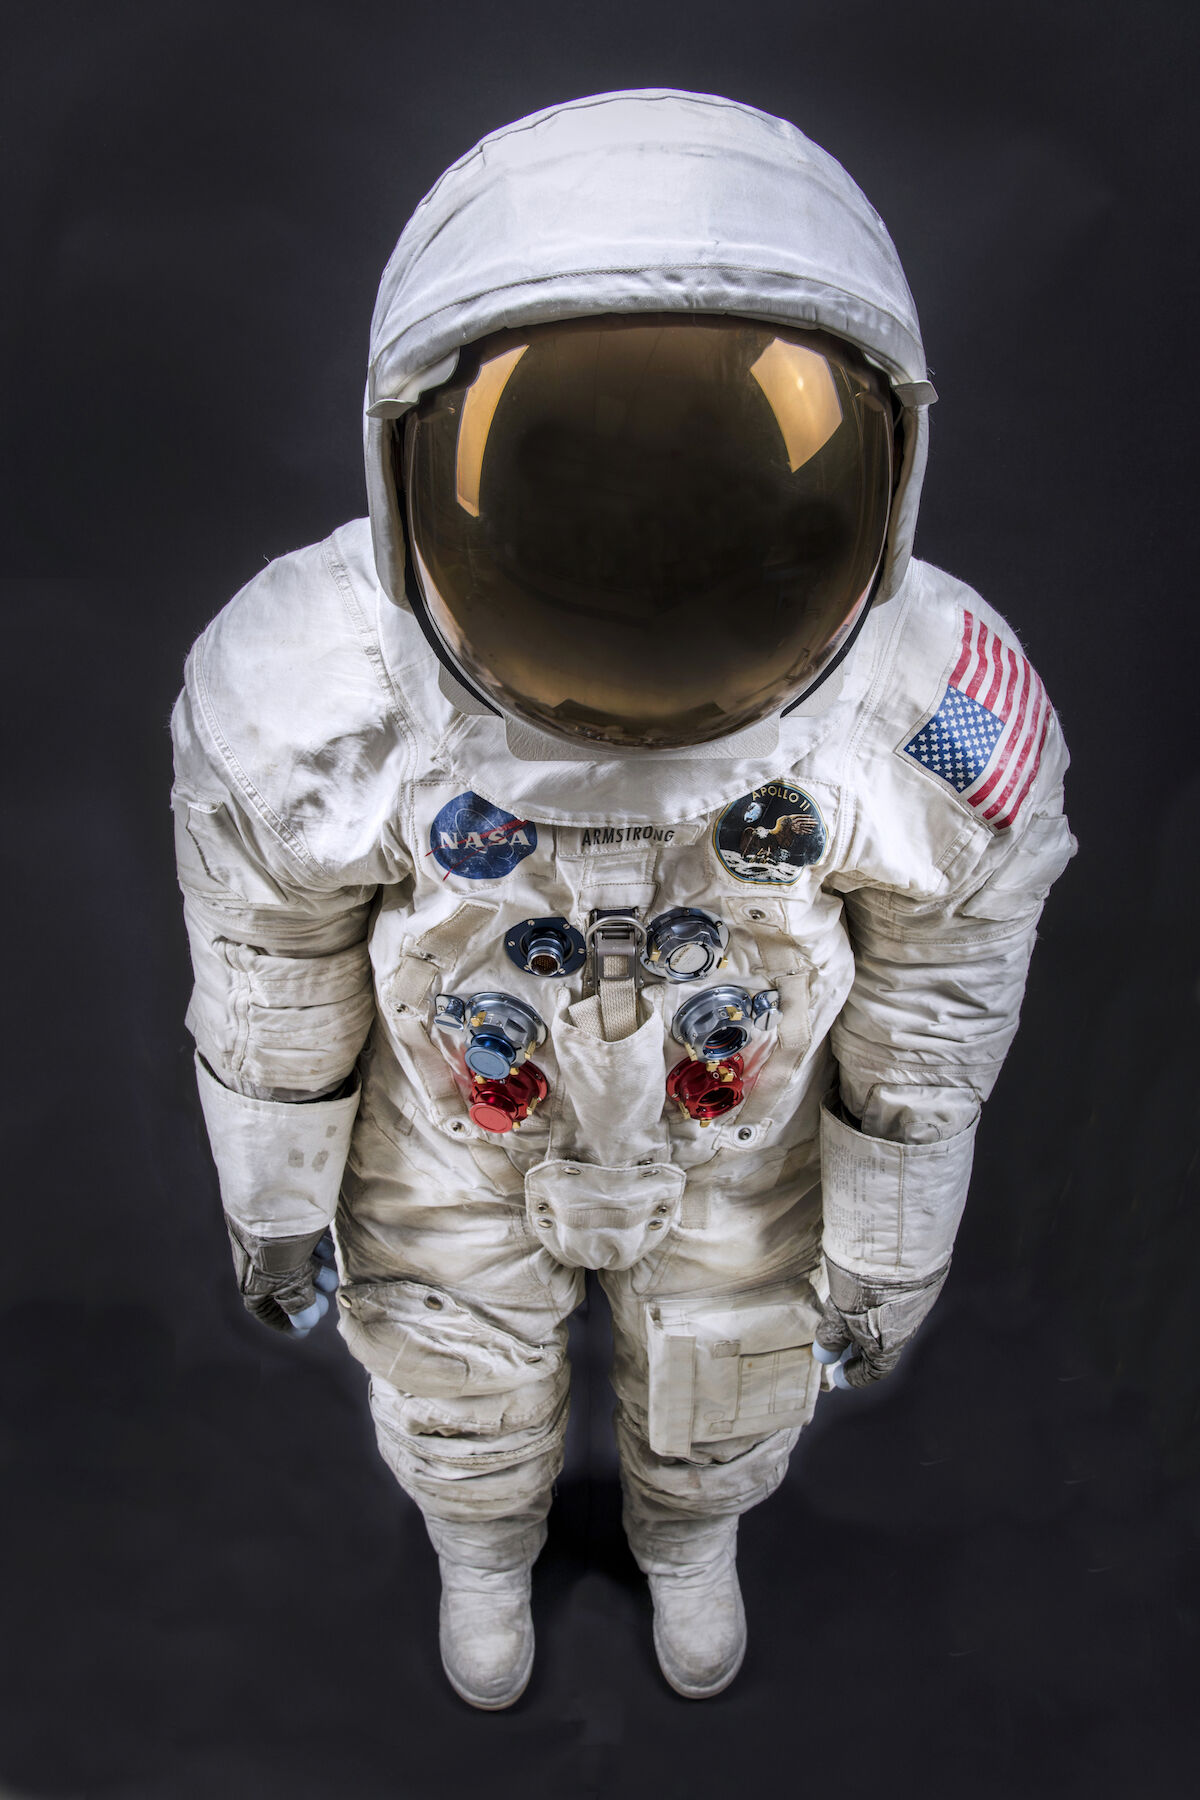 This space suit was worn by astronaut Neil Armstrong, Commander of the Apollo 11 mission, which landed the first man on the Moon on July 20, 1969. It was conserved thanks to a successful Kickstarter campaign in 2015 to conserve, digitize and display the suit in time for the 50th anniversary of the first Moon landing. Photo by Jim Preston. Courtesy the Smithsonian's National Air and Space Museum. © Smithsonian Institution.